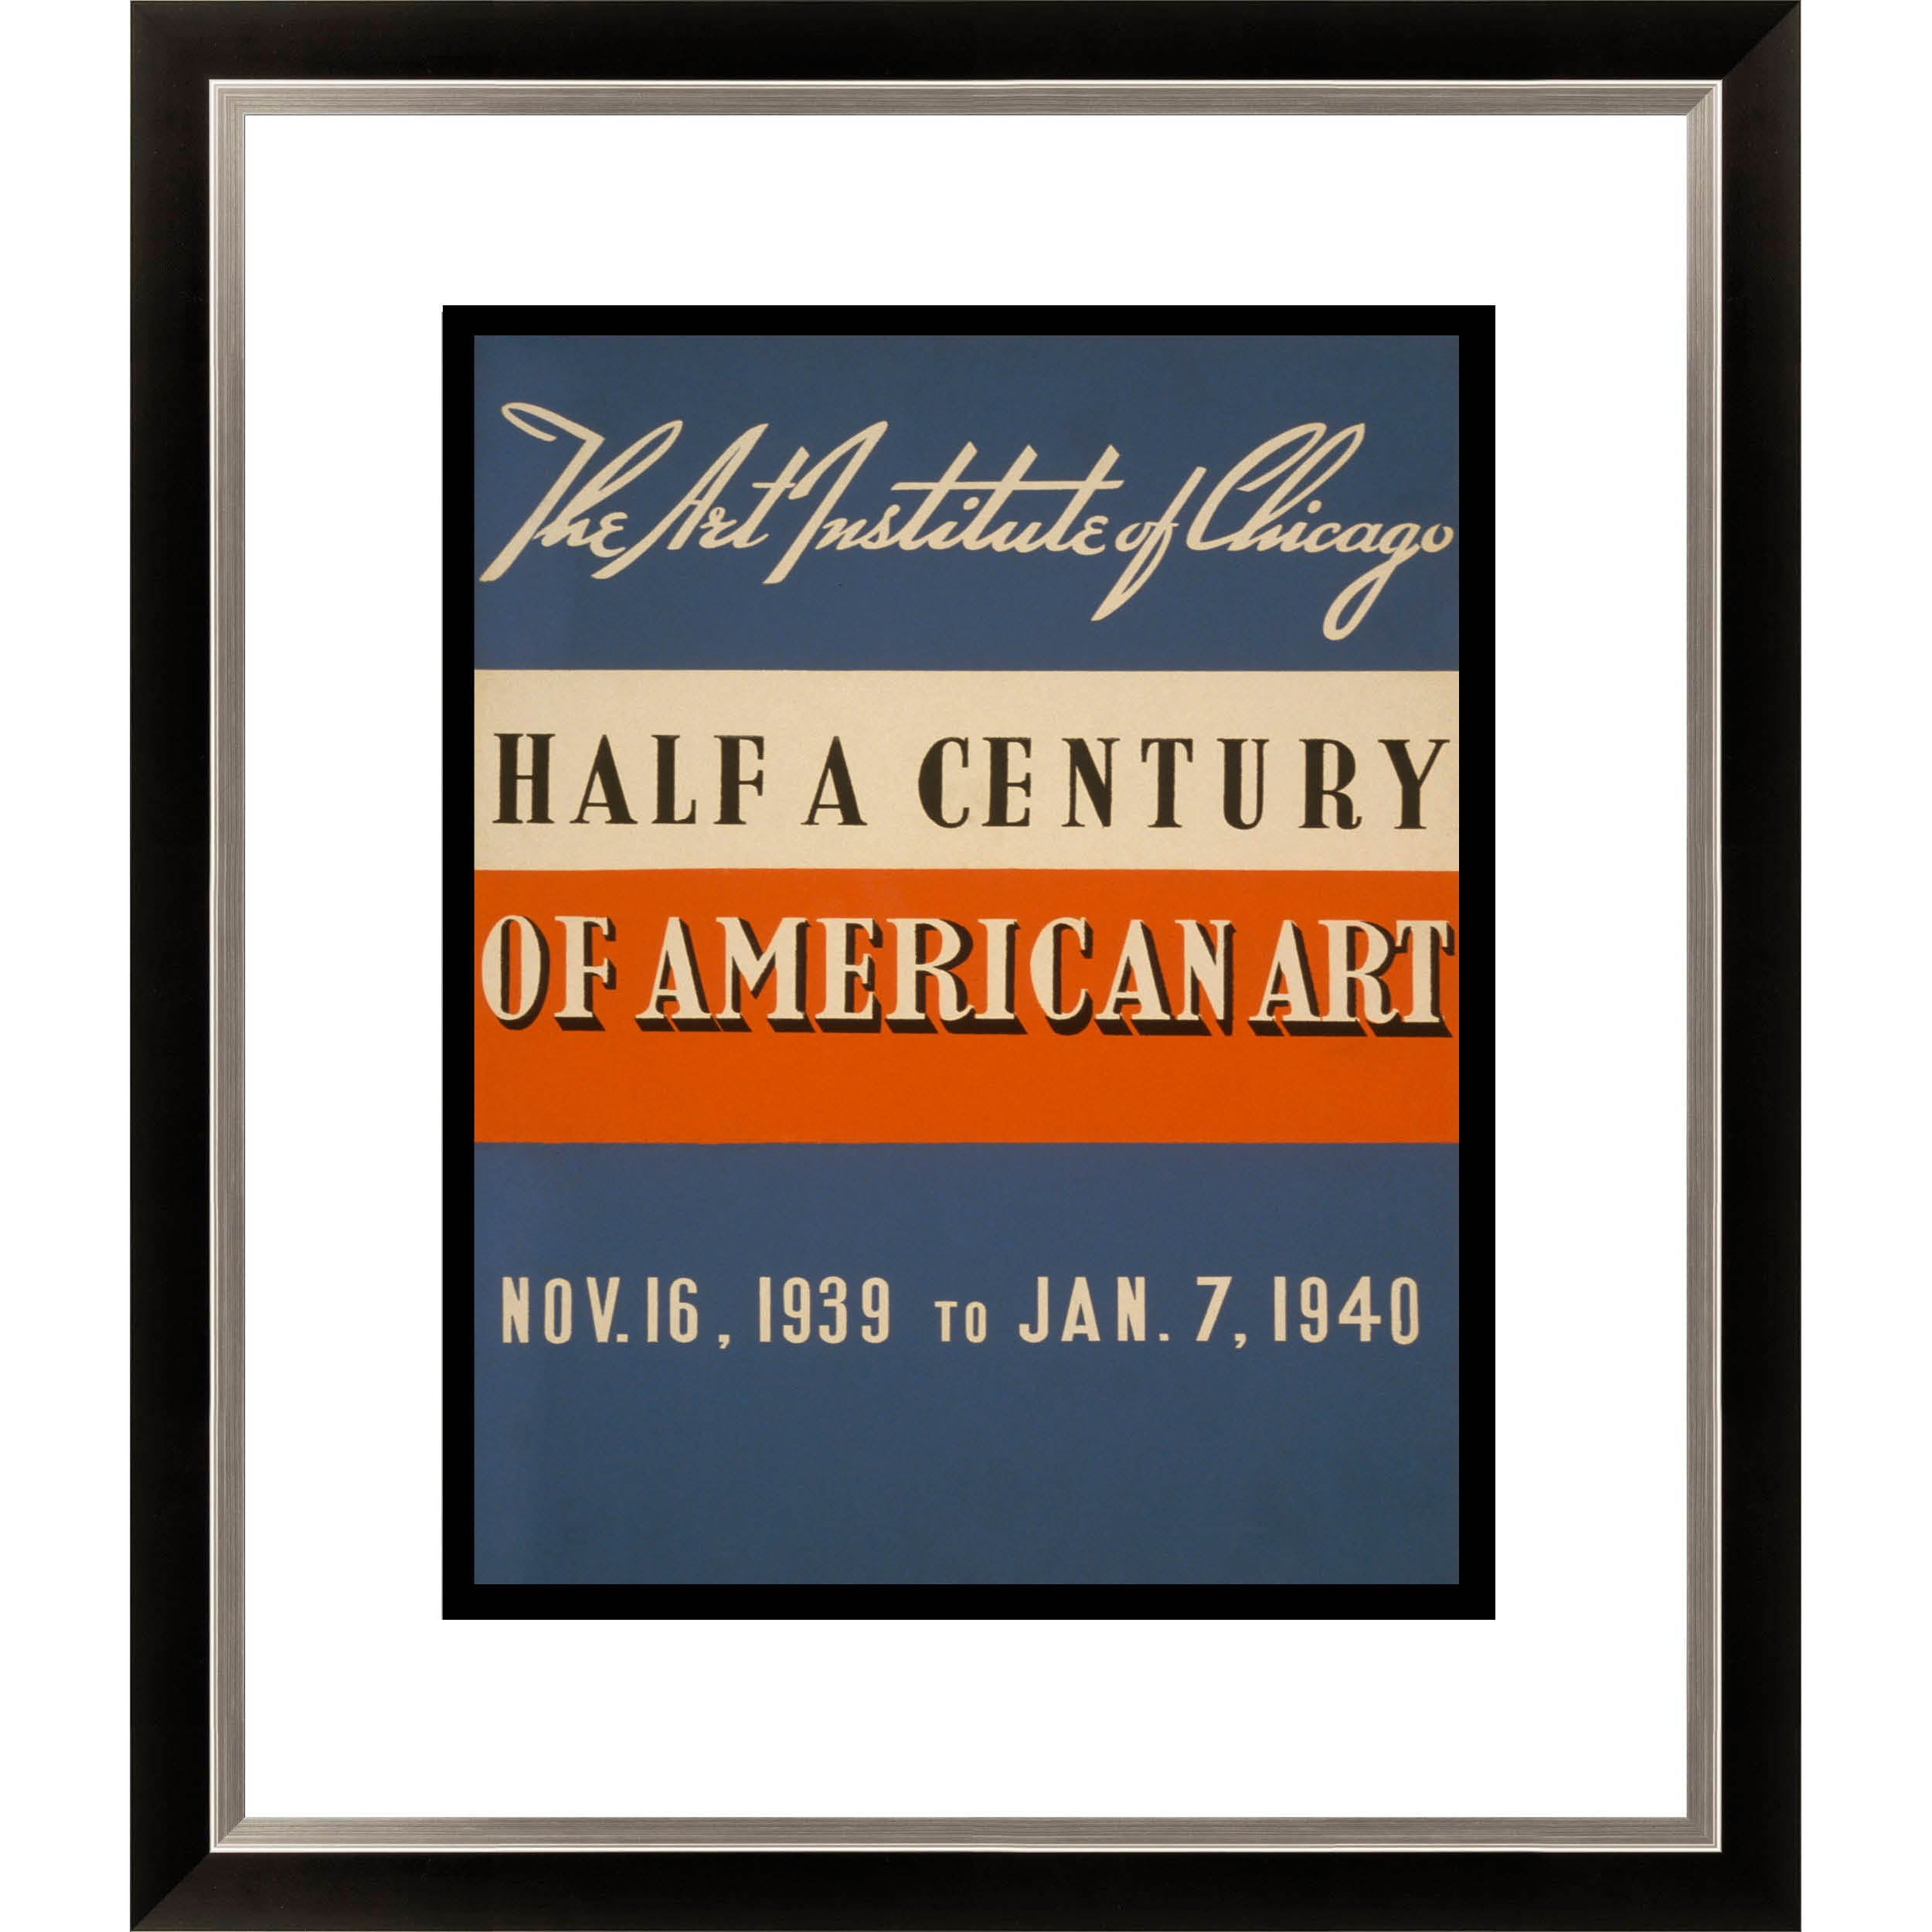 Gallery Direct Half a Century of American Art The Art Institute of Chicago Framed Limited Edition Giclee Art